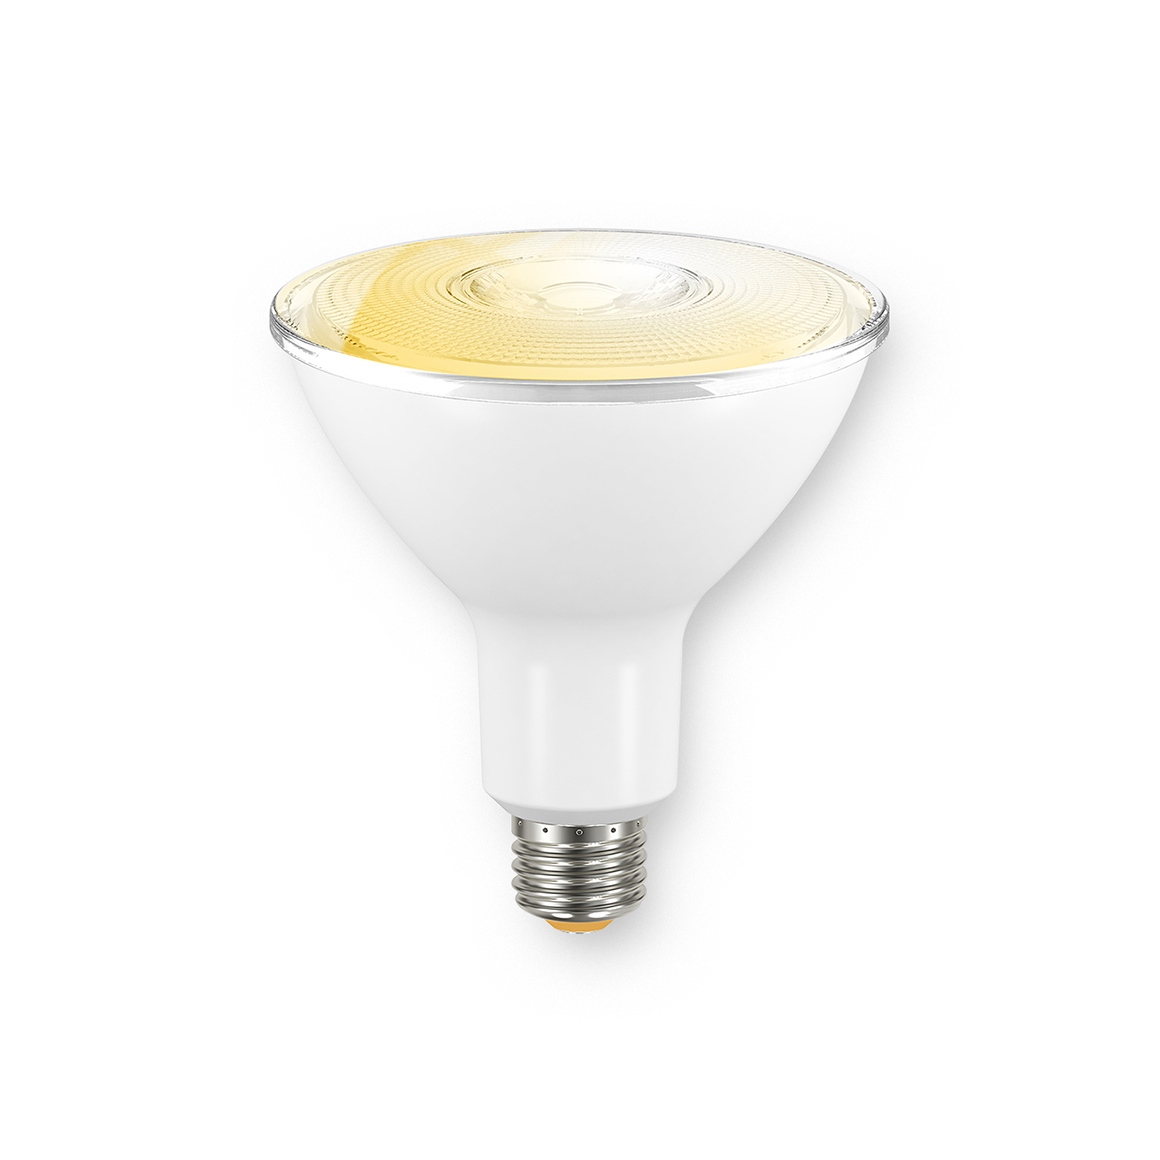 PAR38 1000lm Dimmable E26